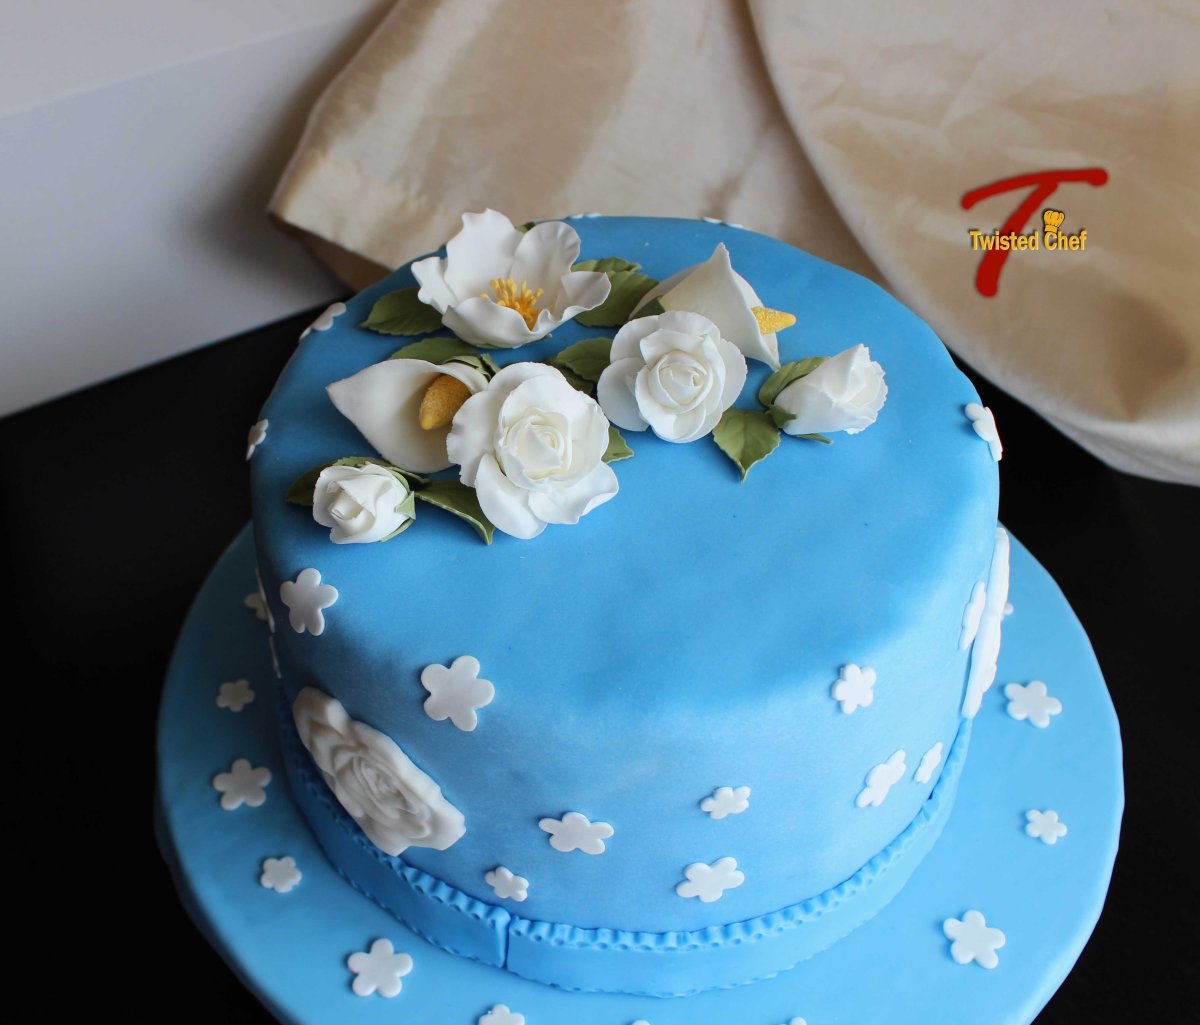 Wilton Cake Decorating Course 3: Gum Paste and Fondant ...